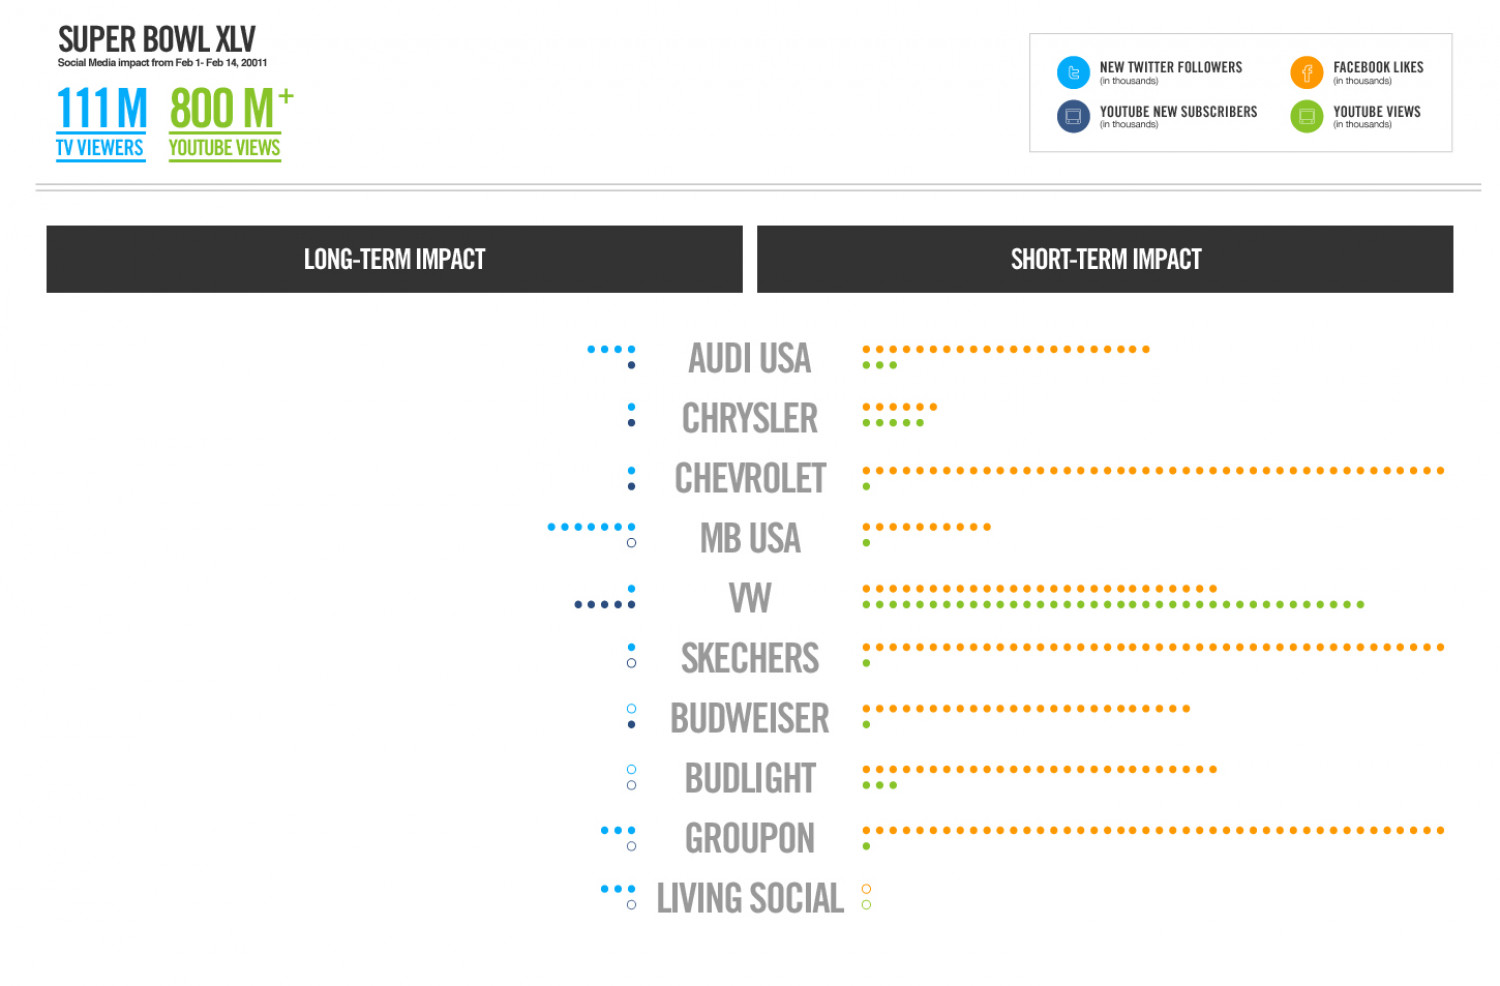 Superbowl XLV: Social Media Impact from Feb 1-Feb 14 2011 Infographic